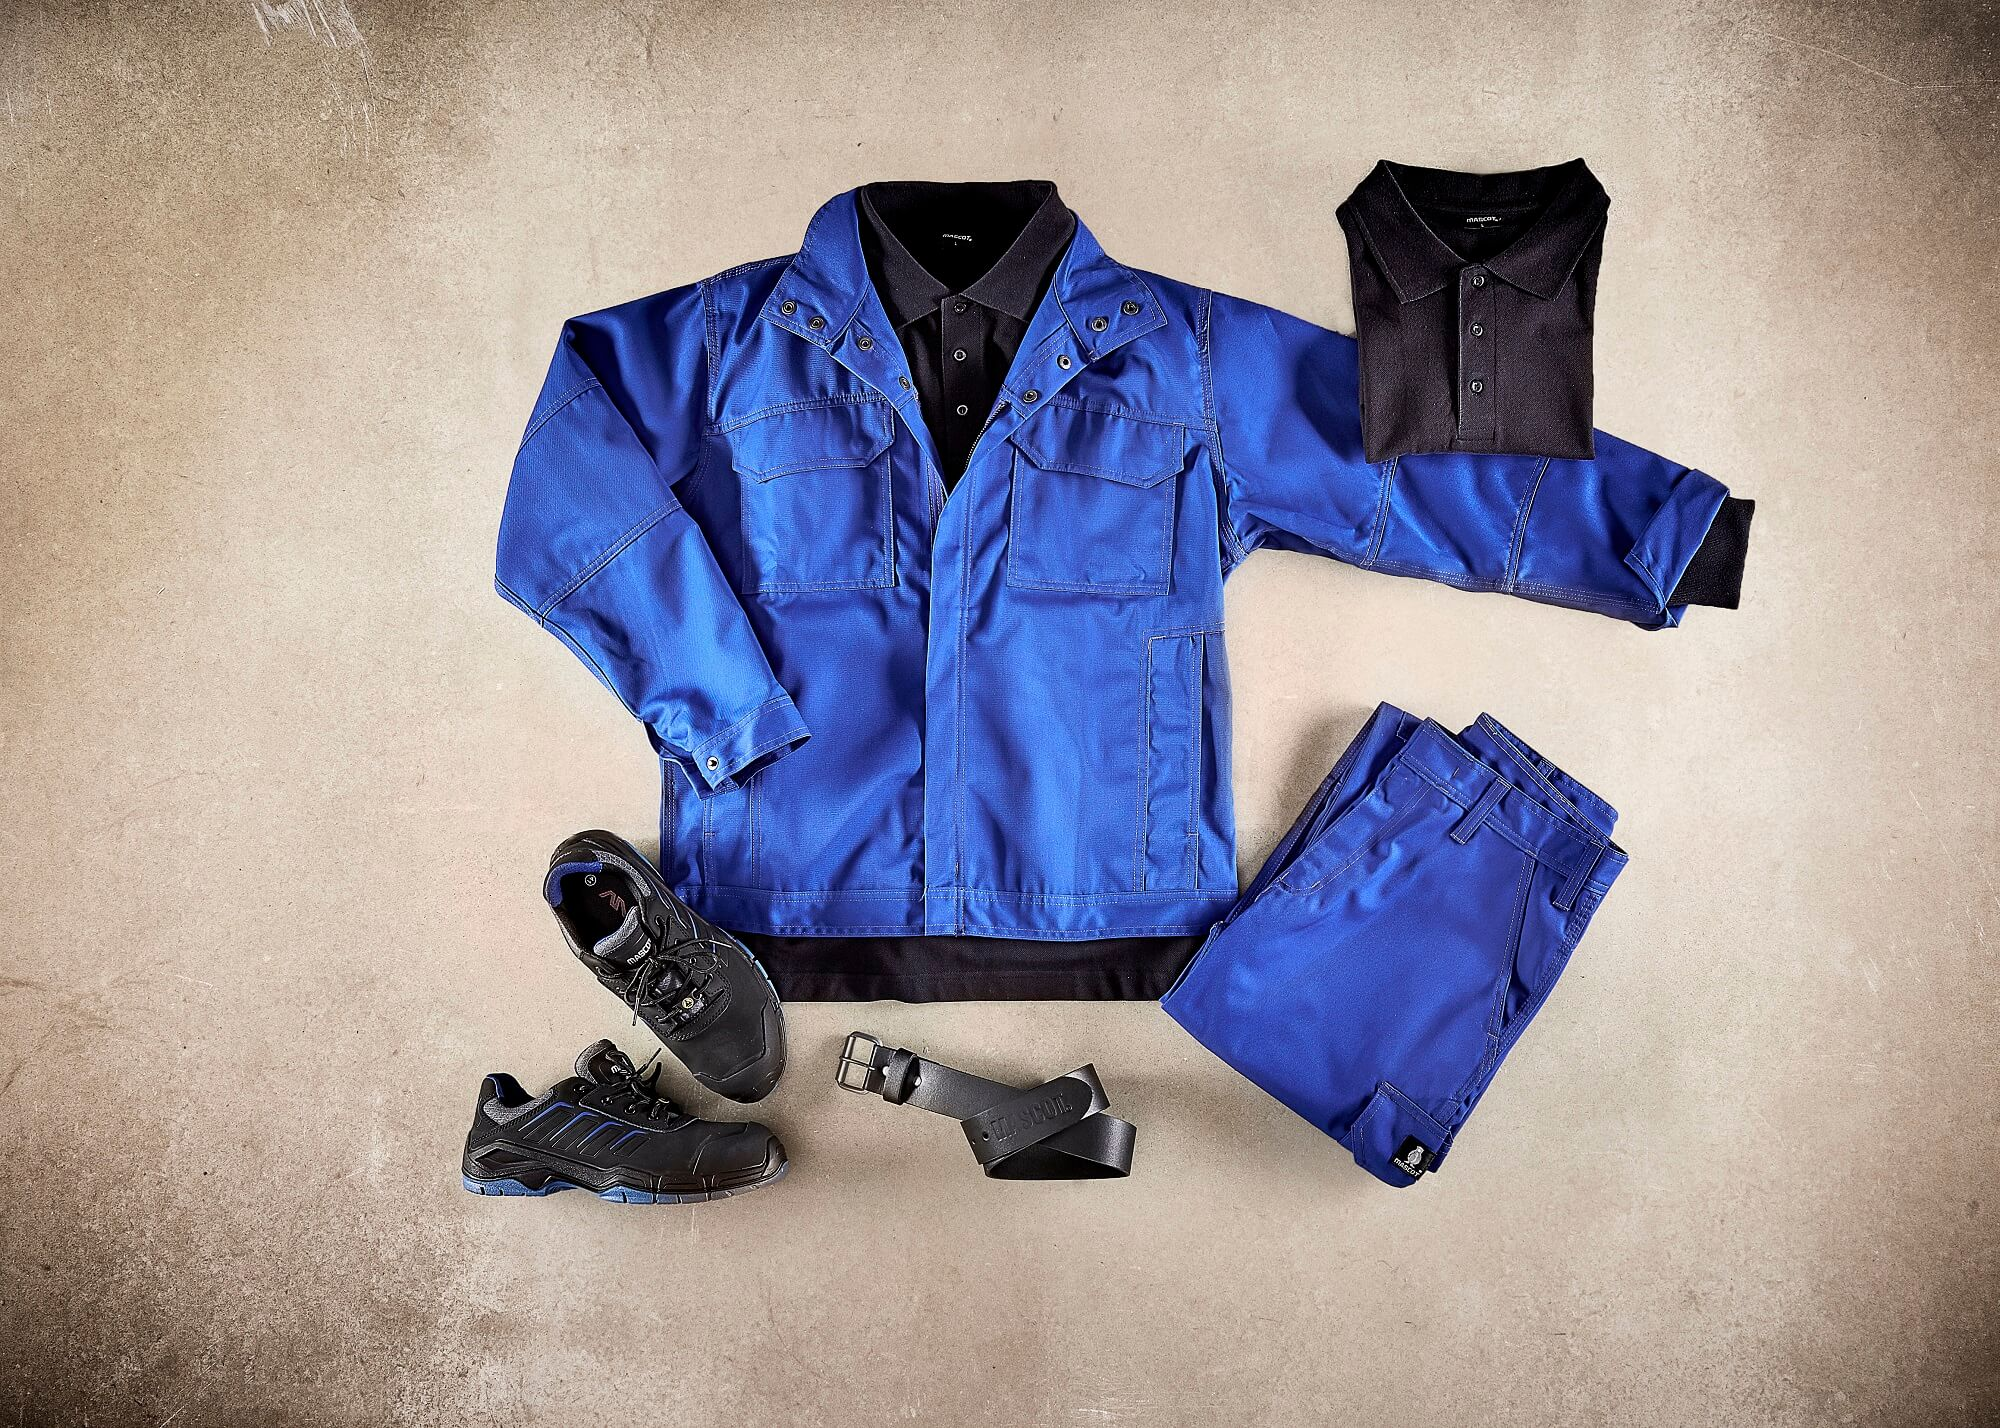 Royal blue - Work Jacket, Trousers & Safety Shoe - Collage